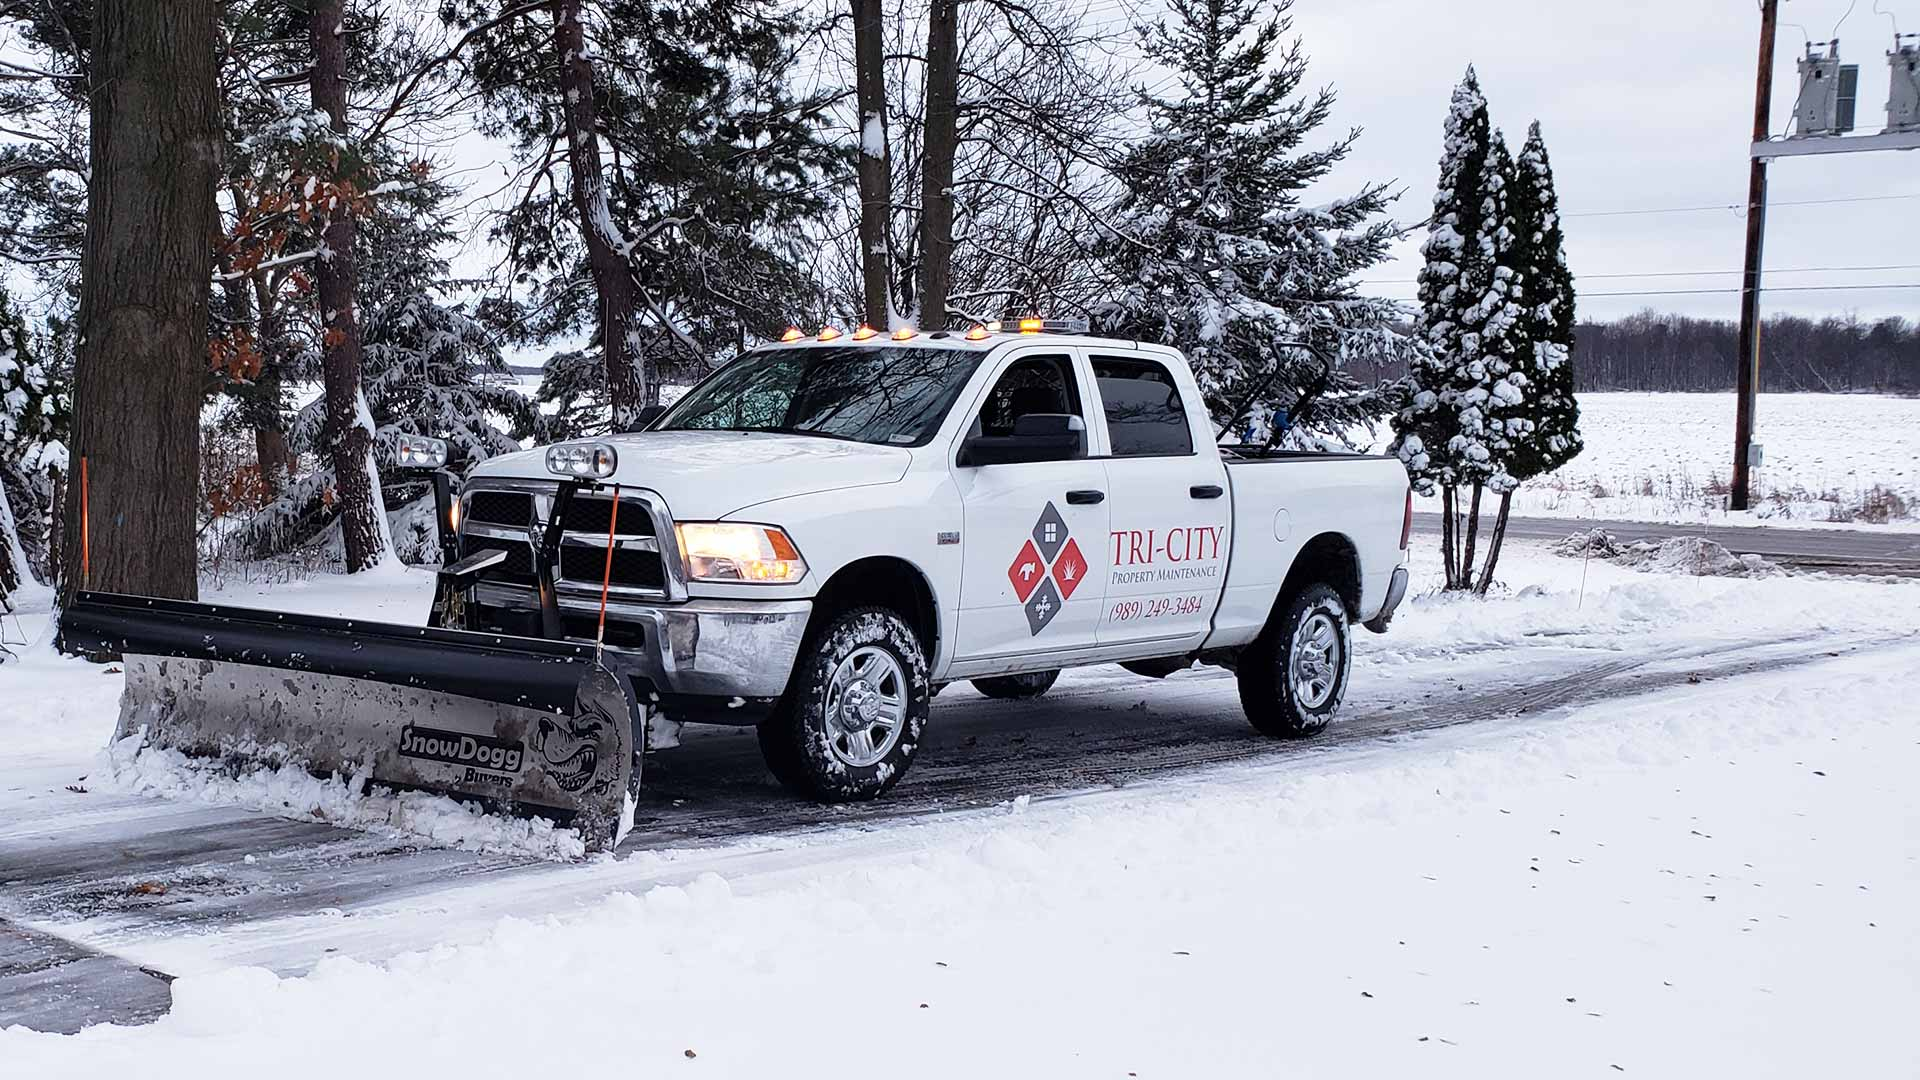 Our snow removal team starts services for commercial clients once the snow has reached 1.5 inches in depth.